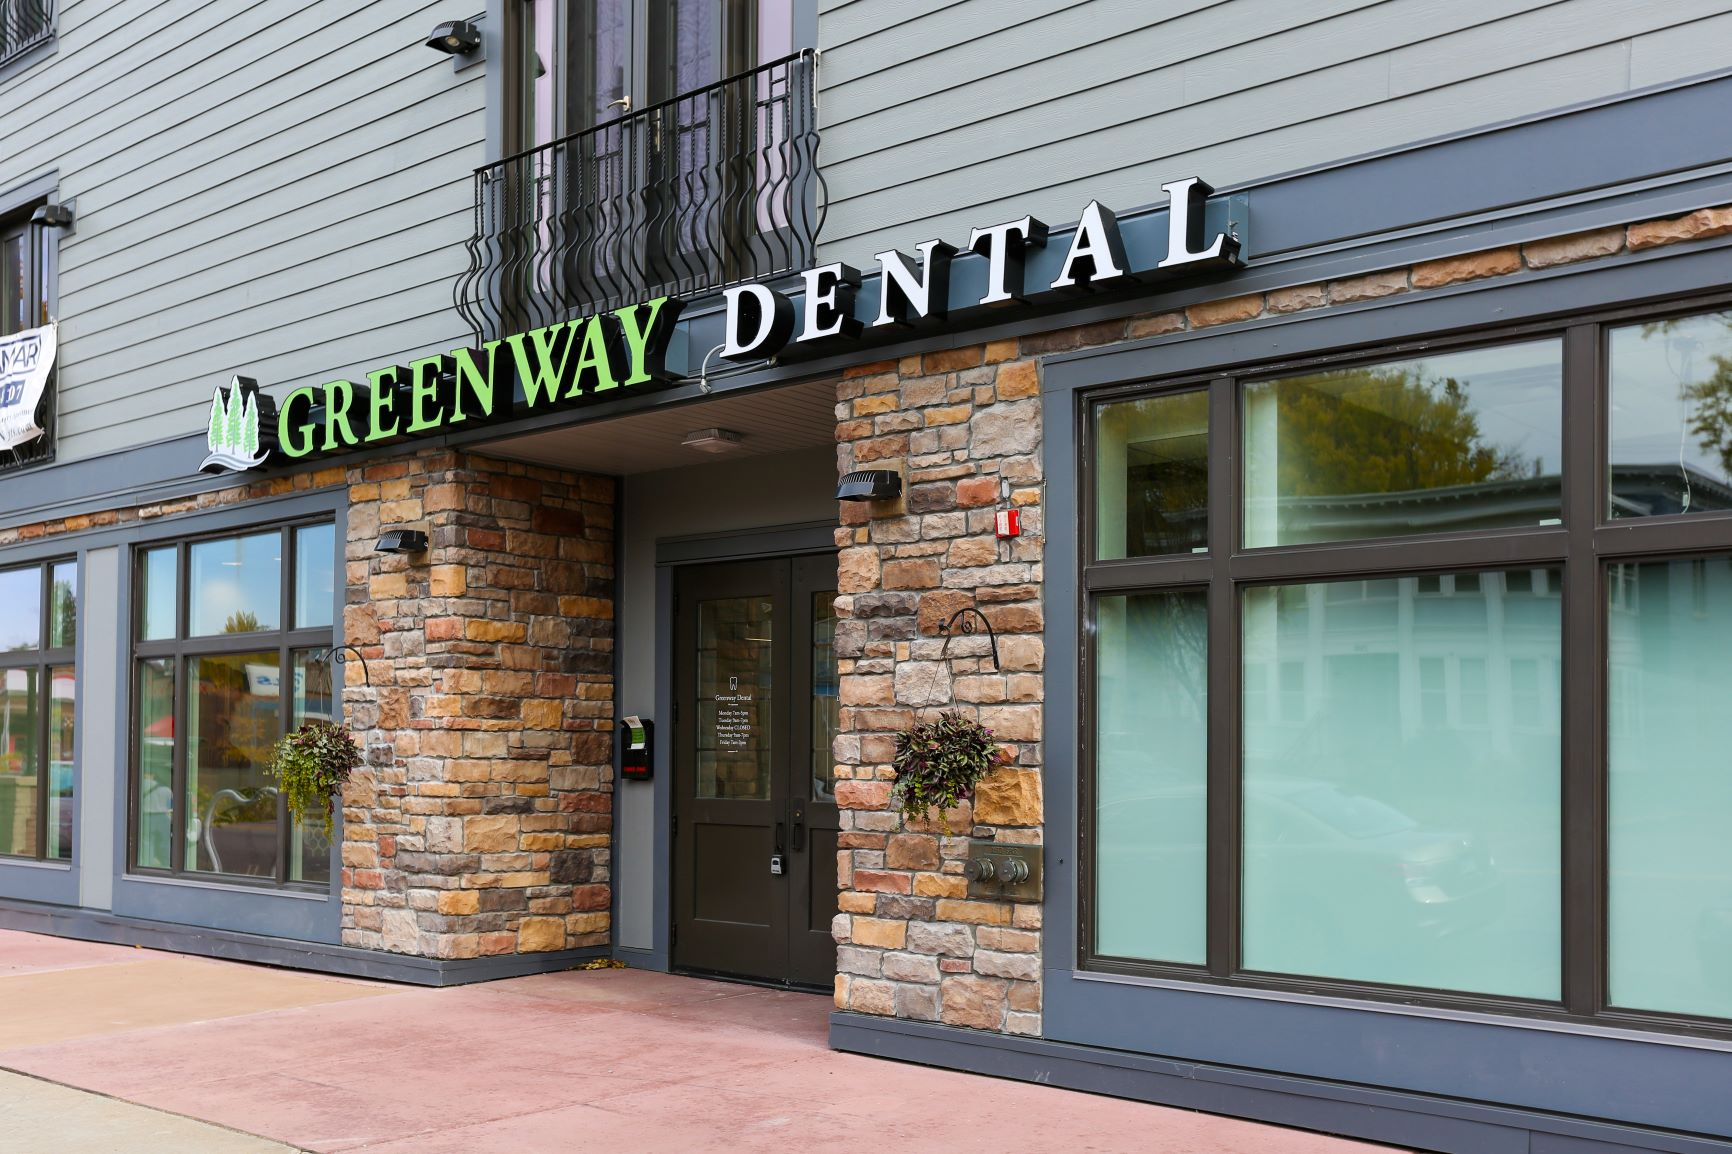 GreenwayDental-Auromira-01